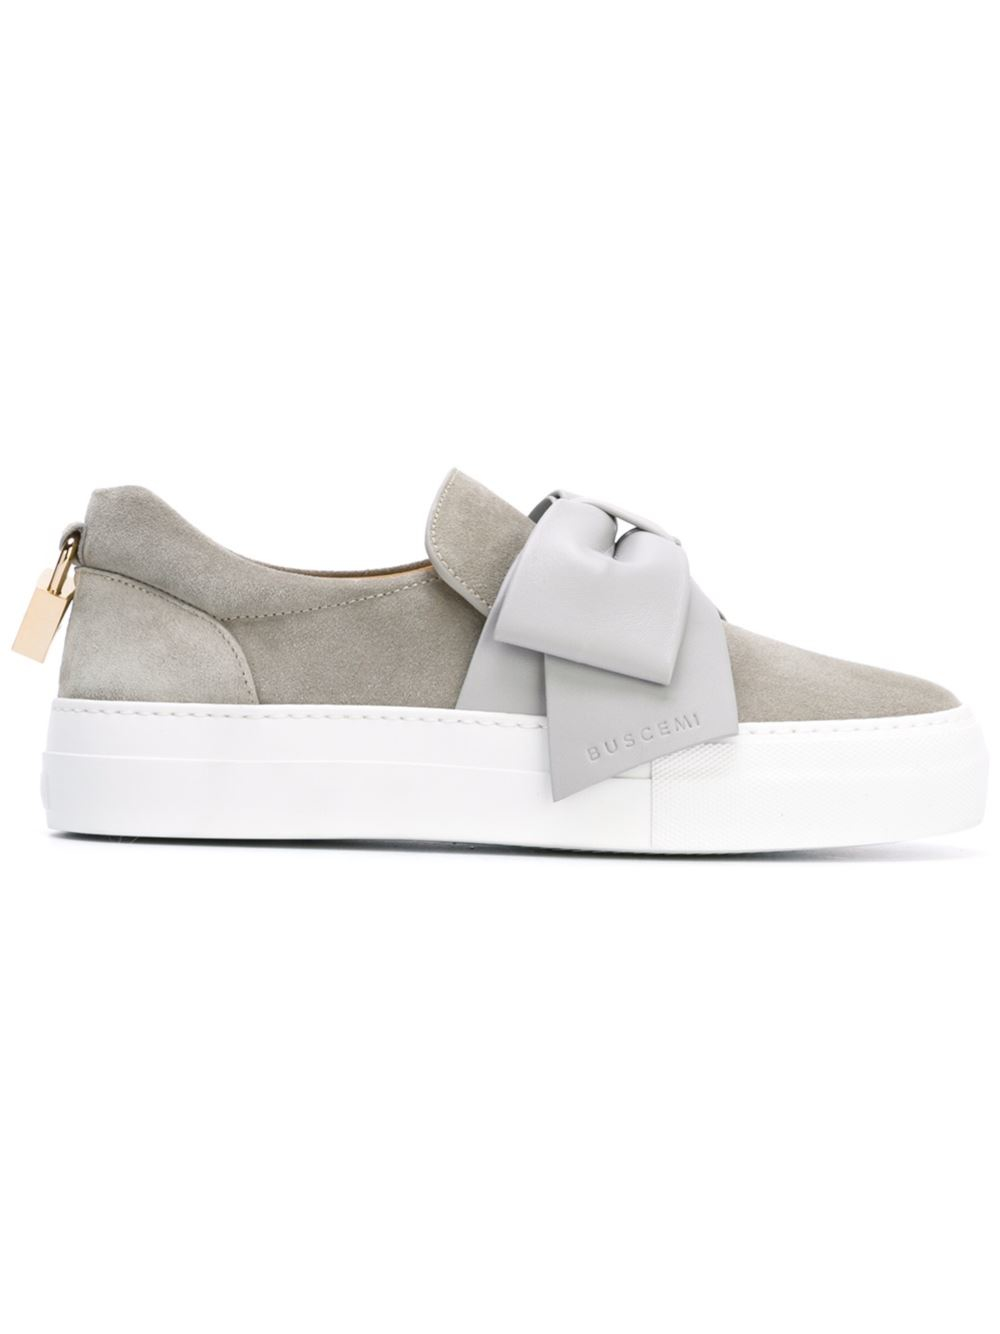 buscemi bow detail slip on sneakers in gray lyst. Black Bedroom Furniture Sets. Home Design Ideas